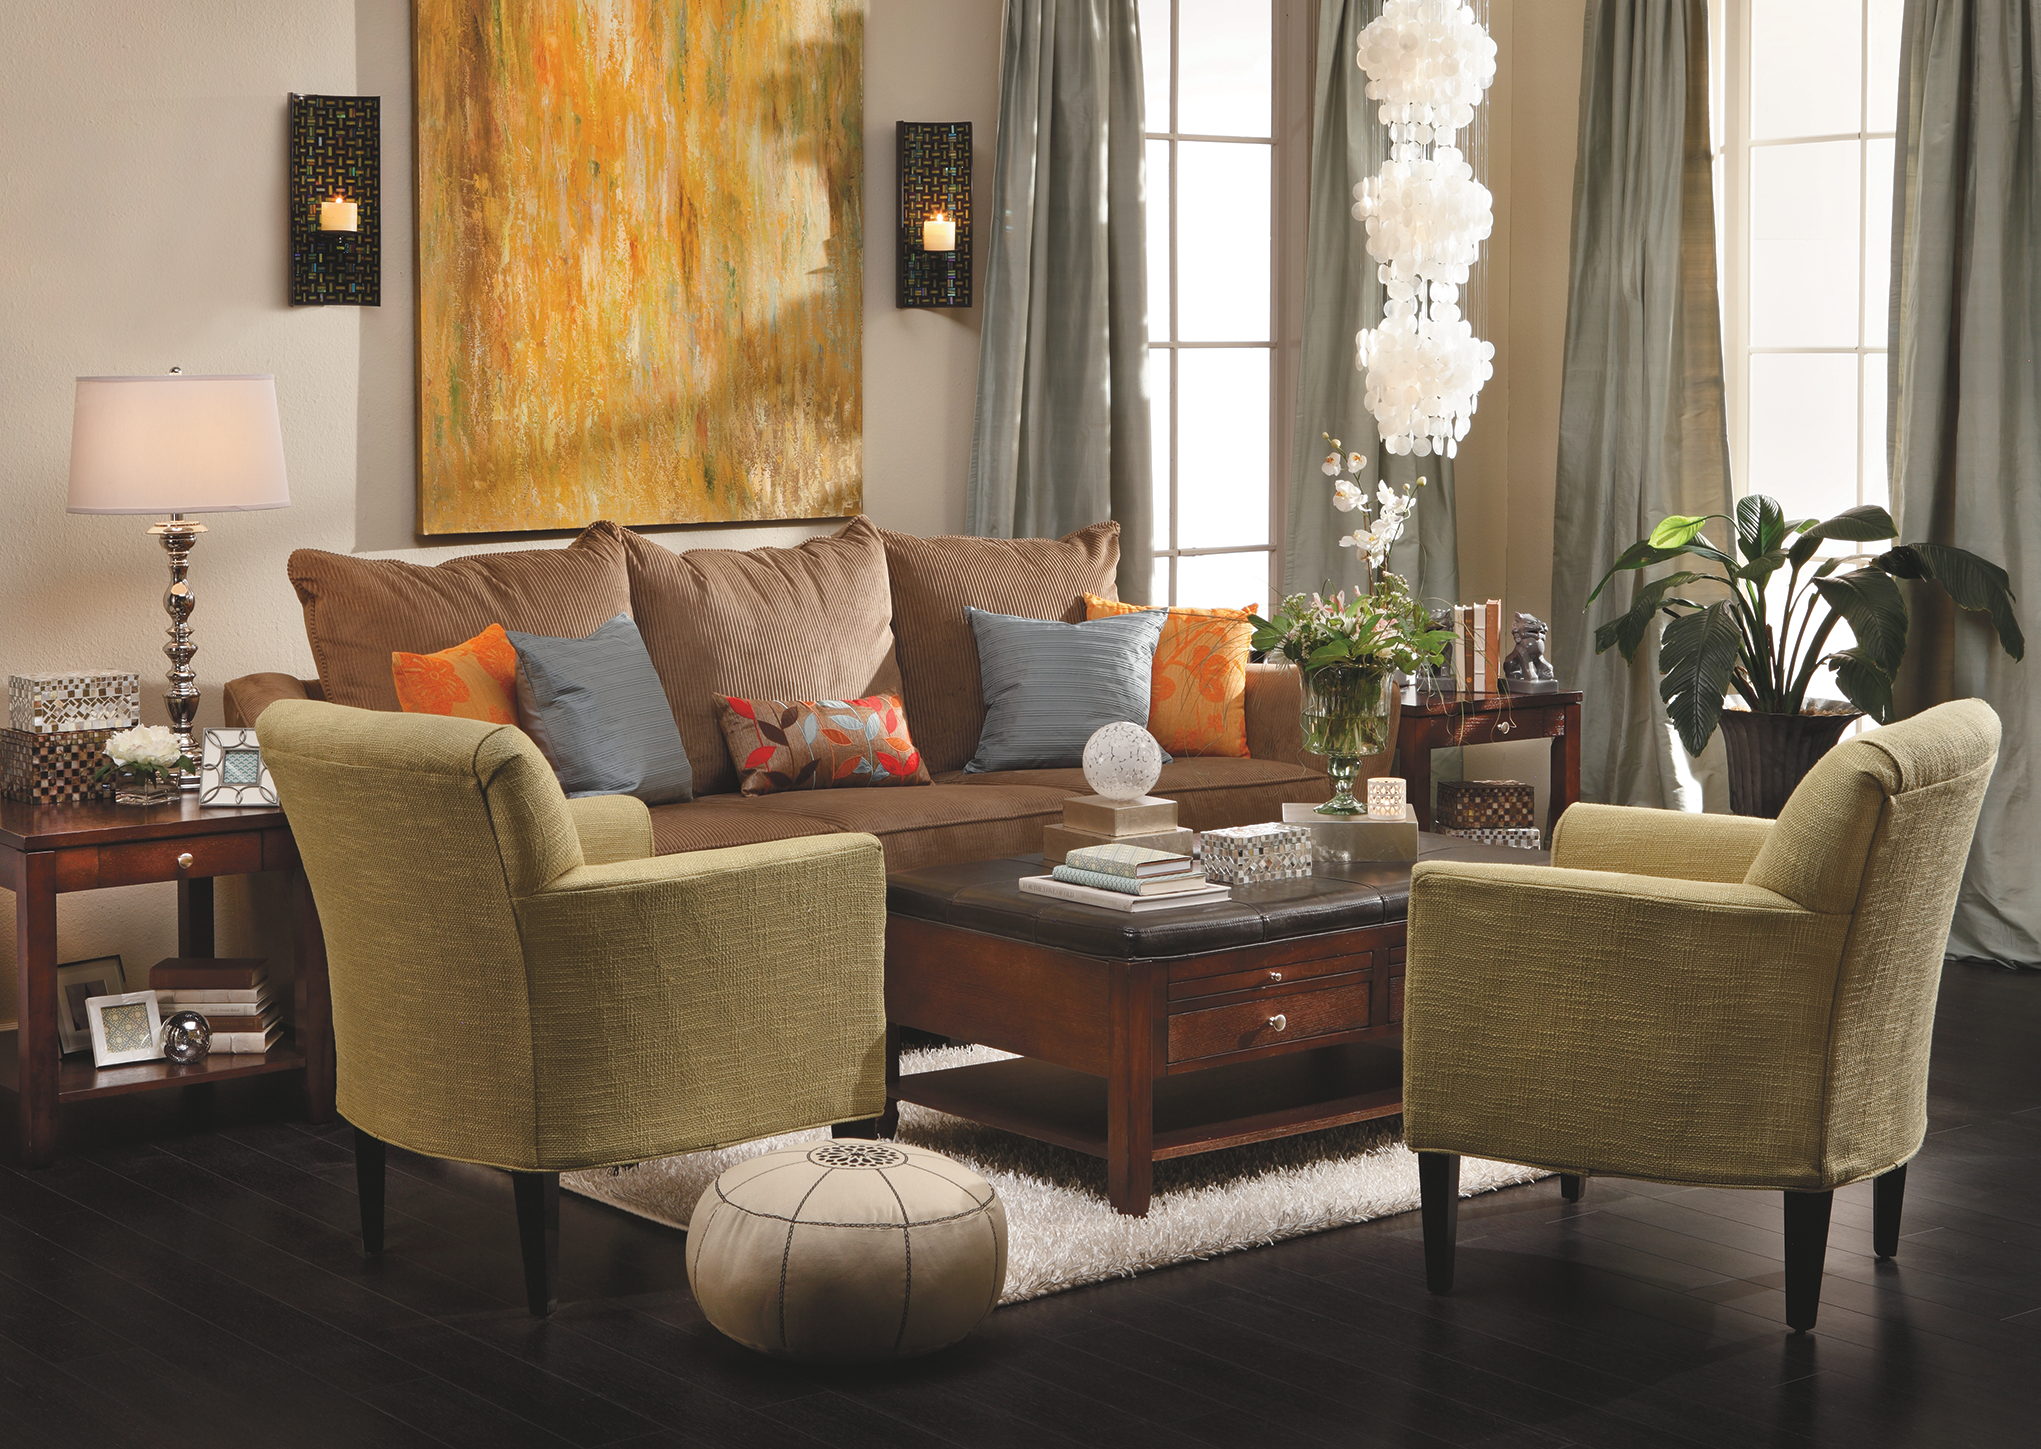 how choose the right accent chair home here chairs with table decorative storage furniture espresso colored end tables acrylic nesting counter height dining set cherry wood and